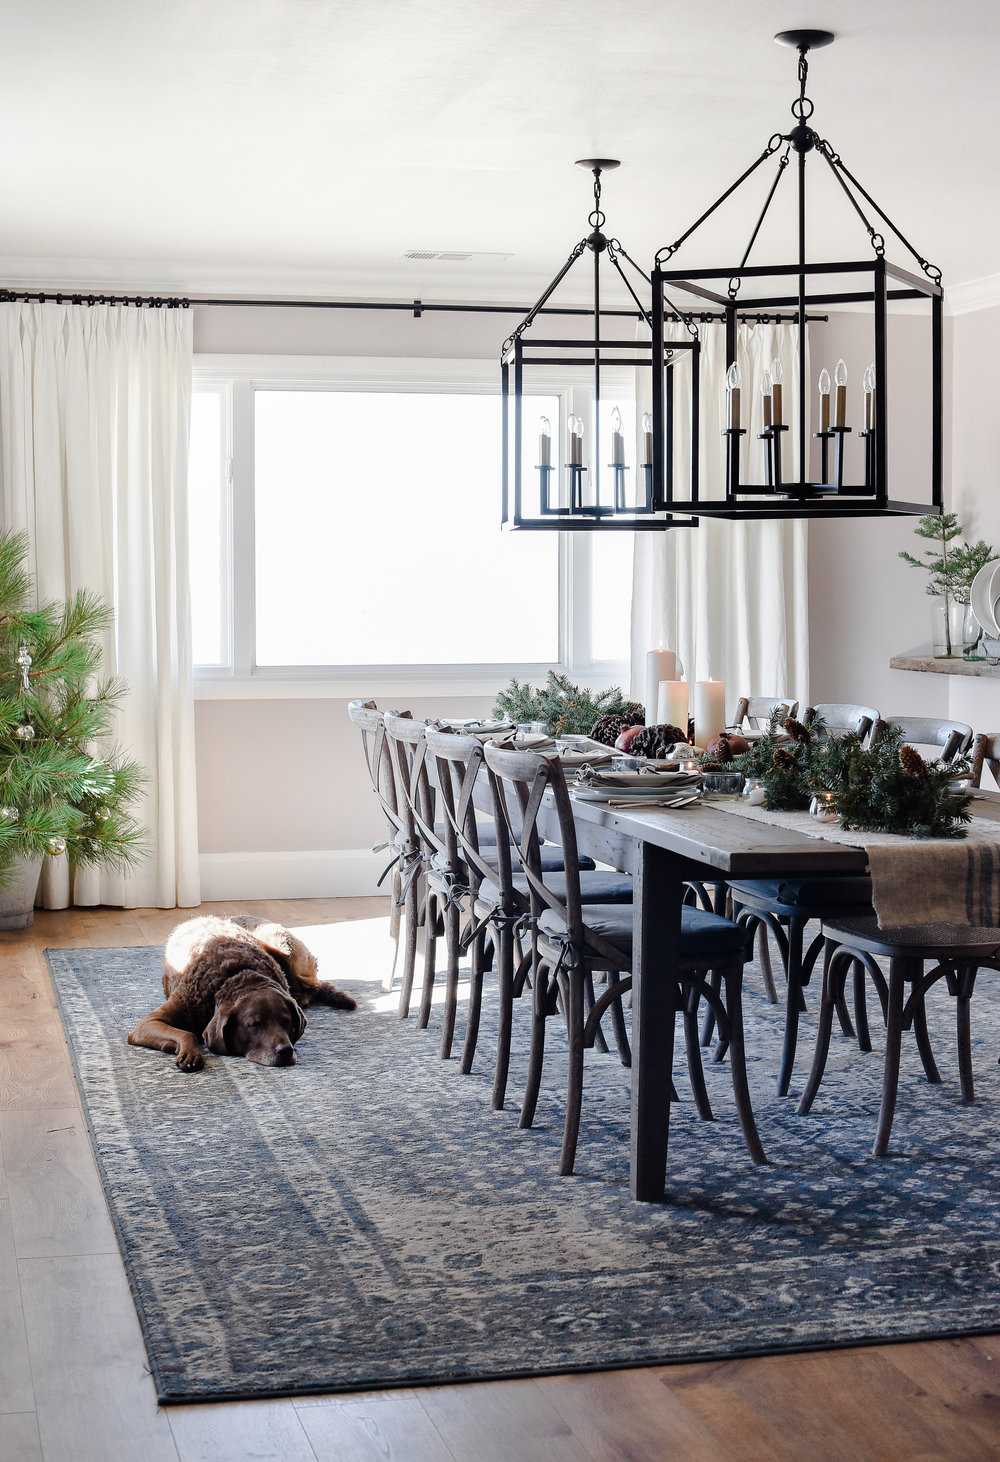 Farmhouse Christmas table ideas beautiful Holiday tablescape! #christmasdecor #farmhousechristmas